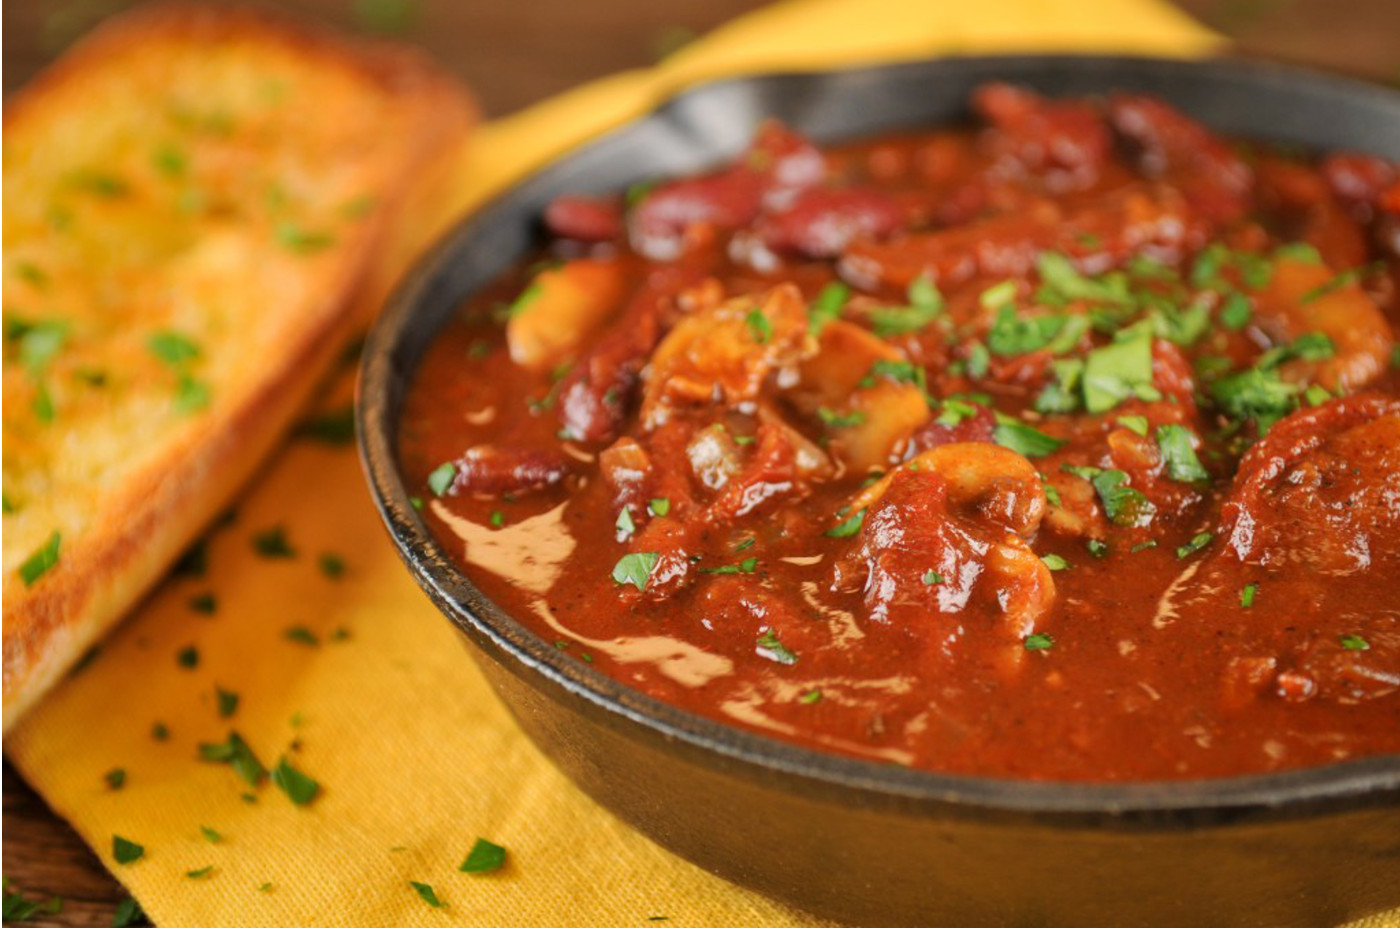 Sun-dried Tomato and Kidney Bean Chili